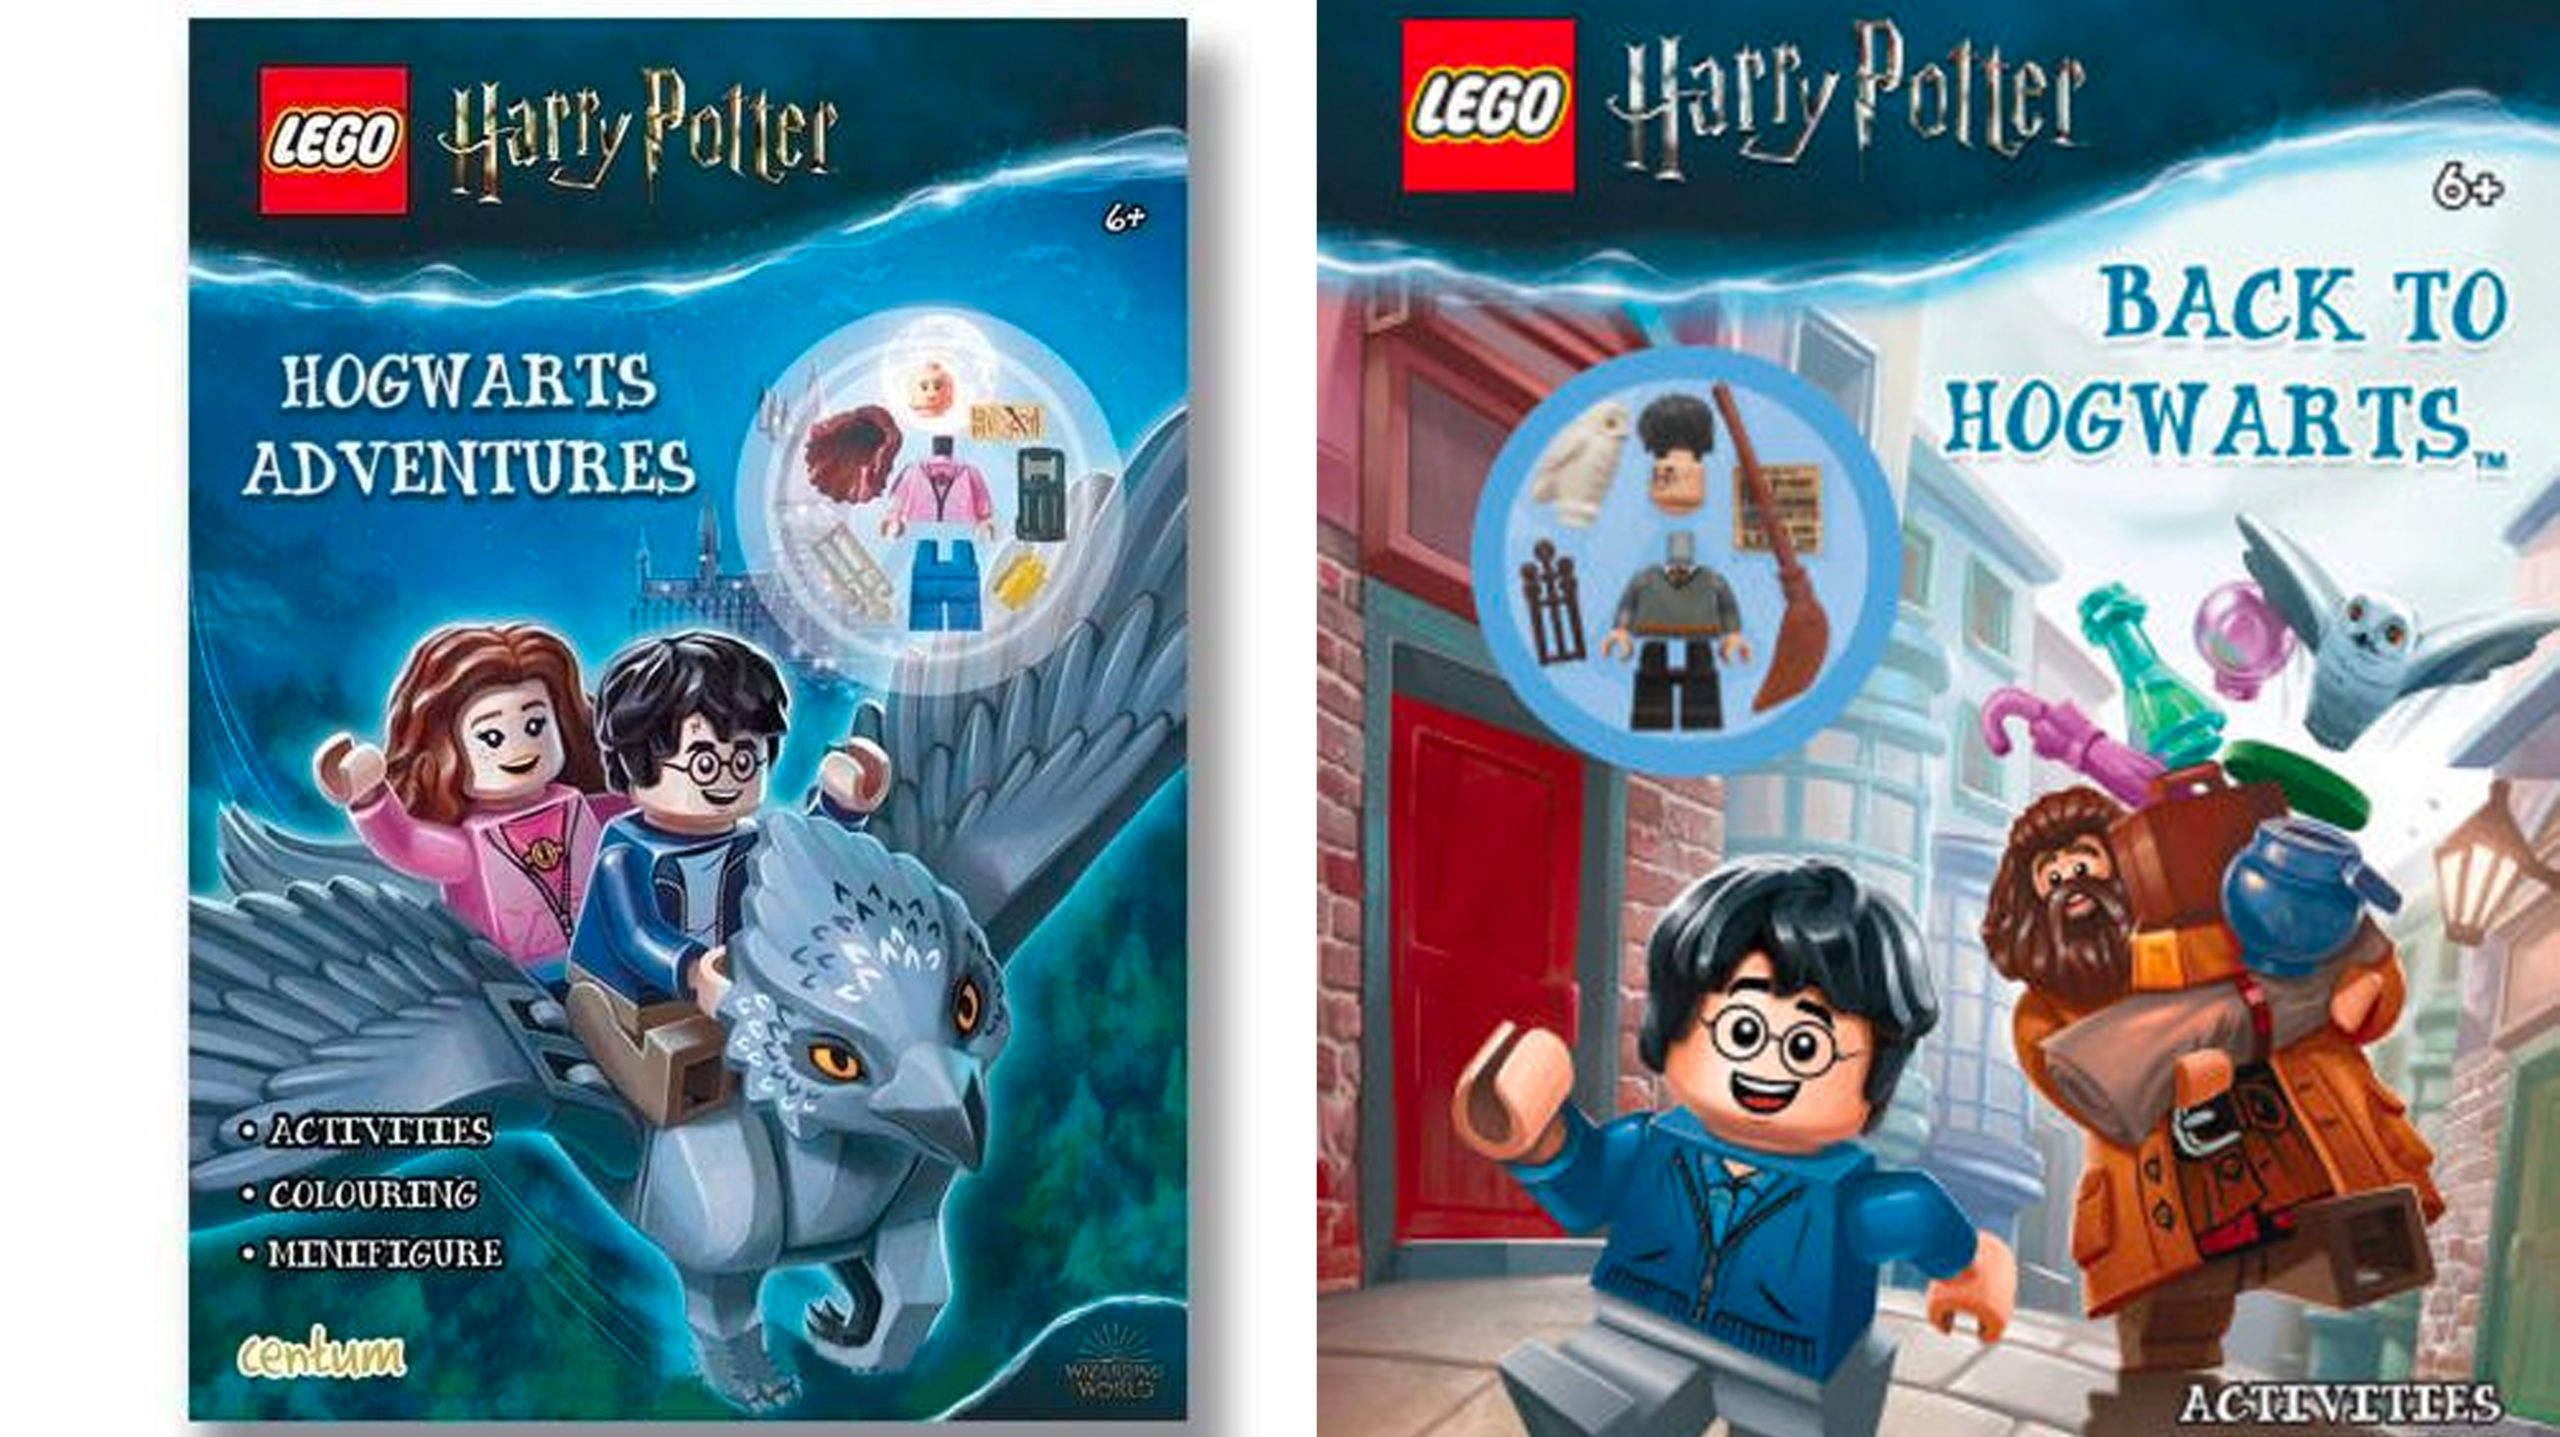 LEGO Harry Potter - Harry Potter and Hermione Books